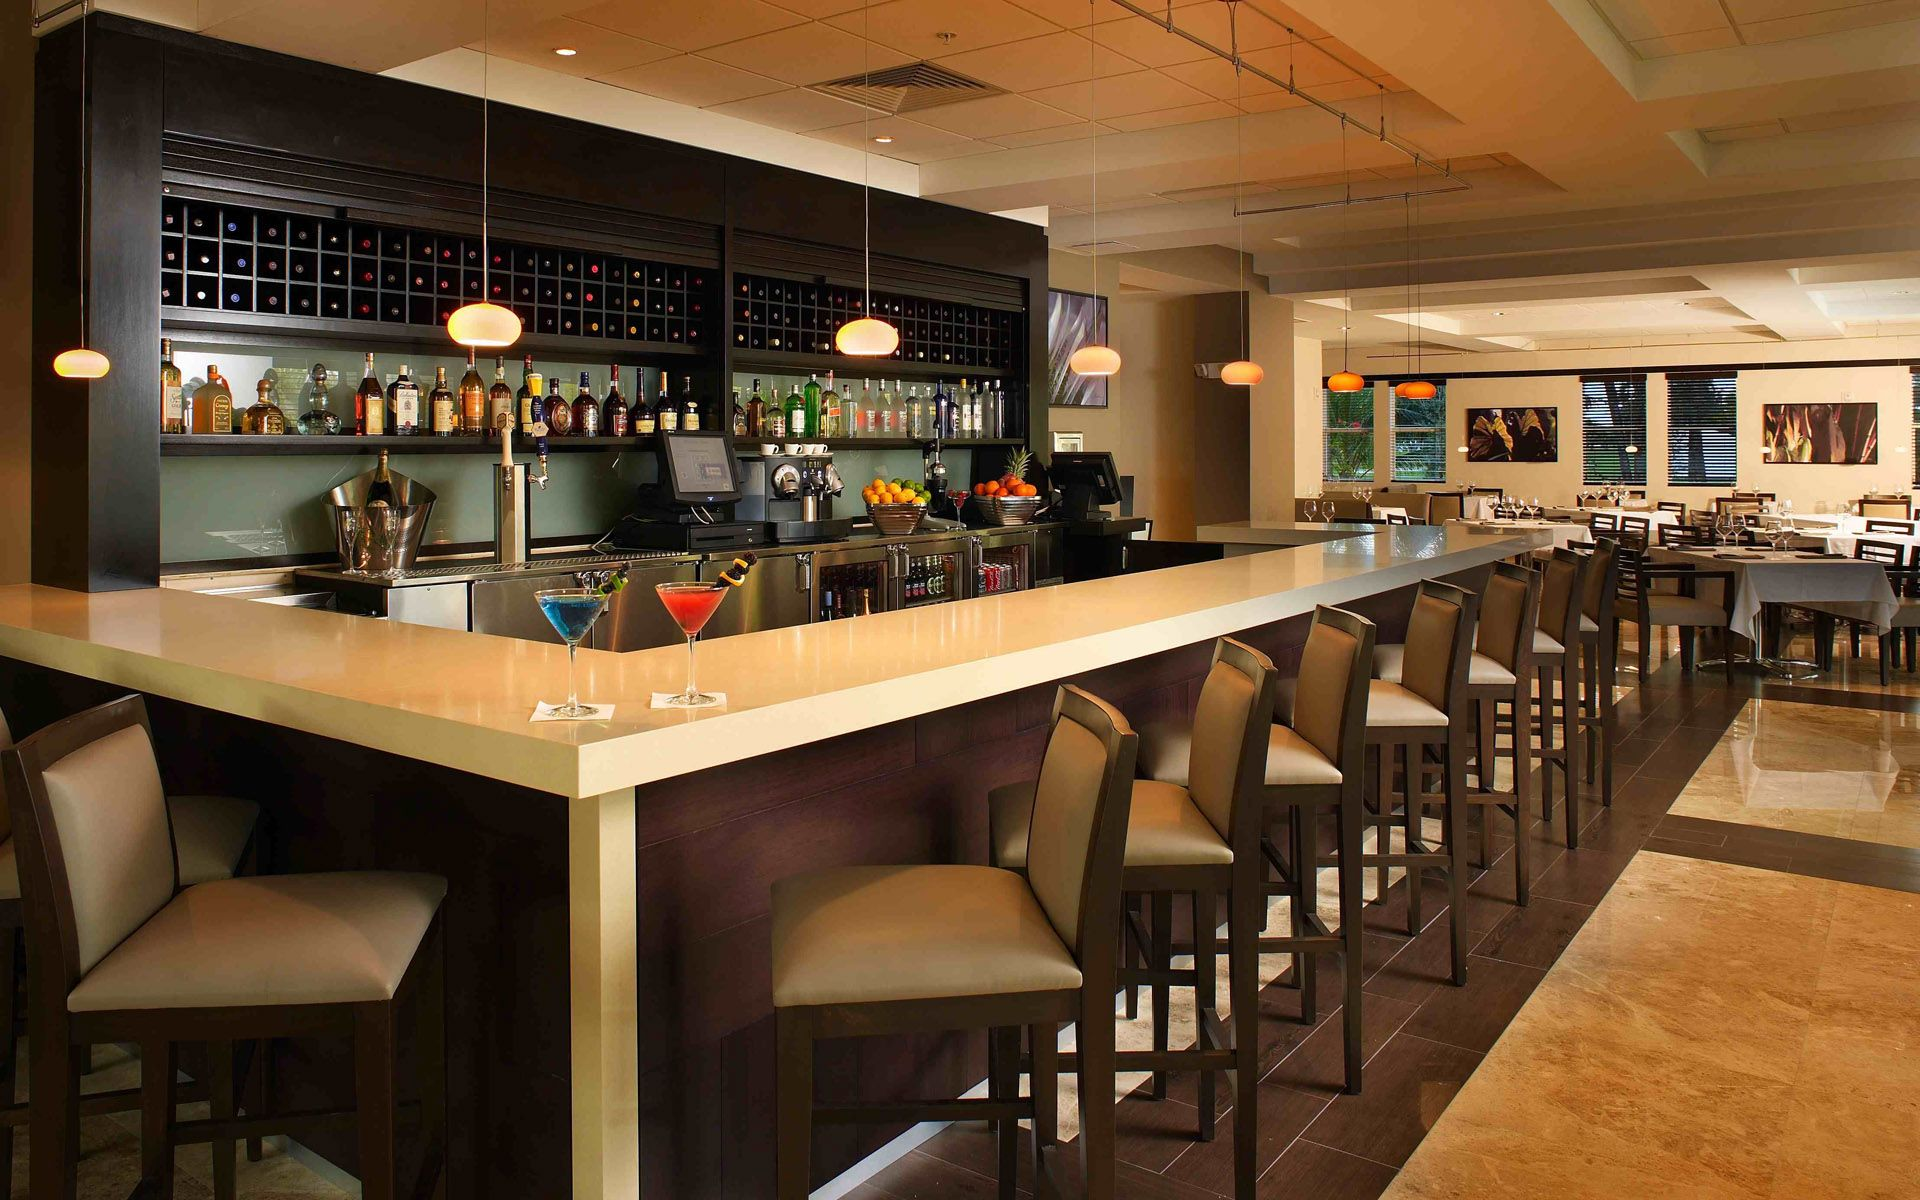 restaurant bar designs layouts   Off the heels of a season opening win  against the K-C Royals, the ...   restaurant bar design   Pinterest   Restaurant  bar ...